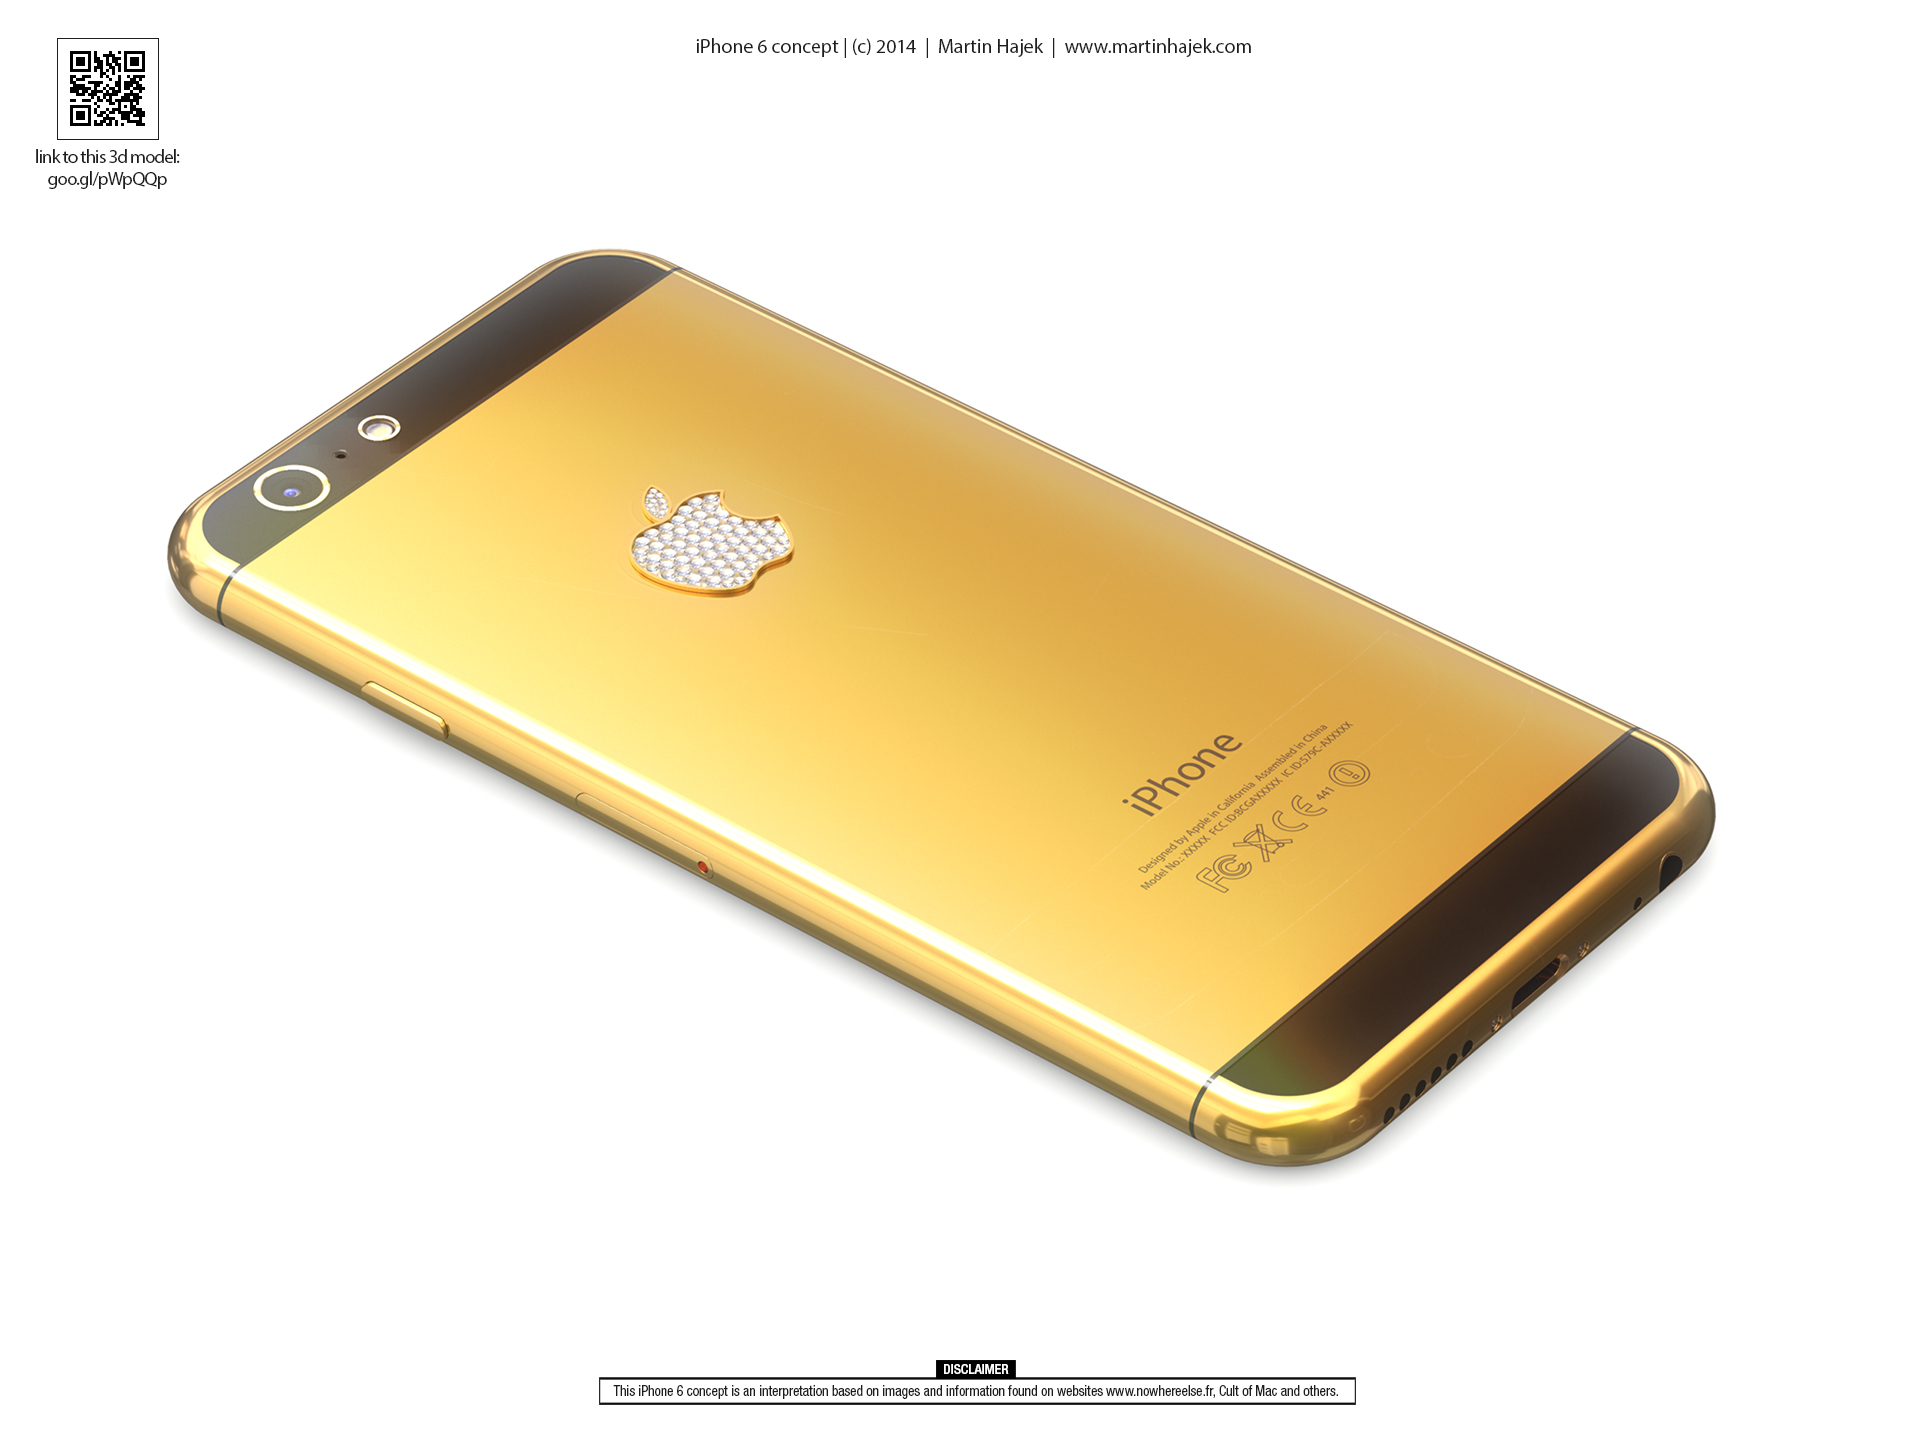 Luxury-iPhone-6-concept-design (2)